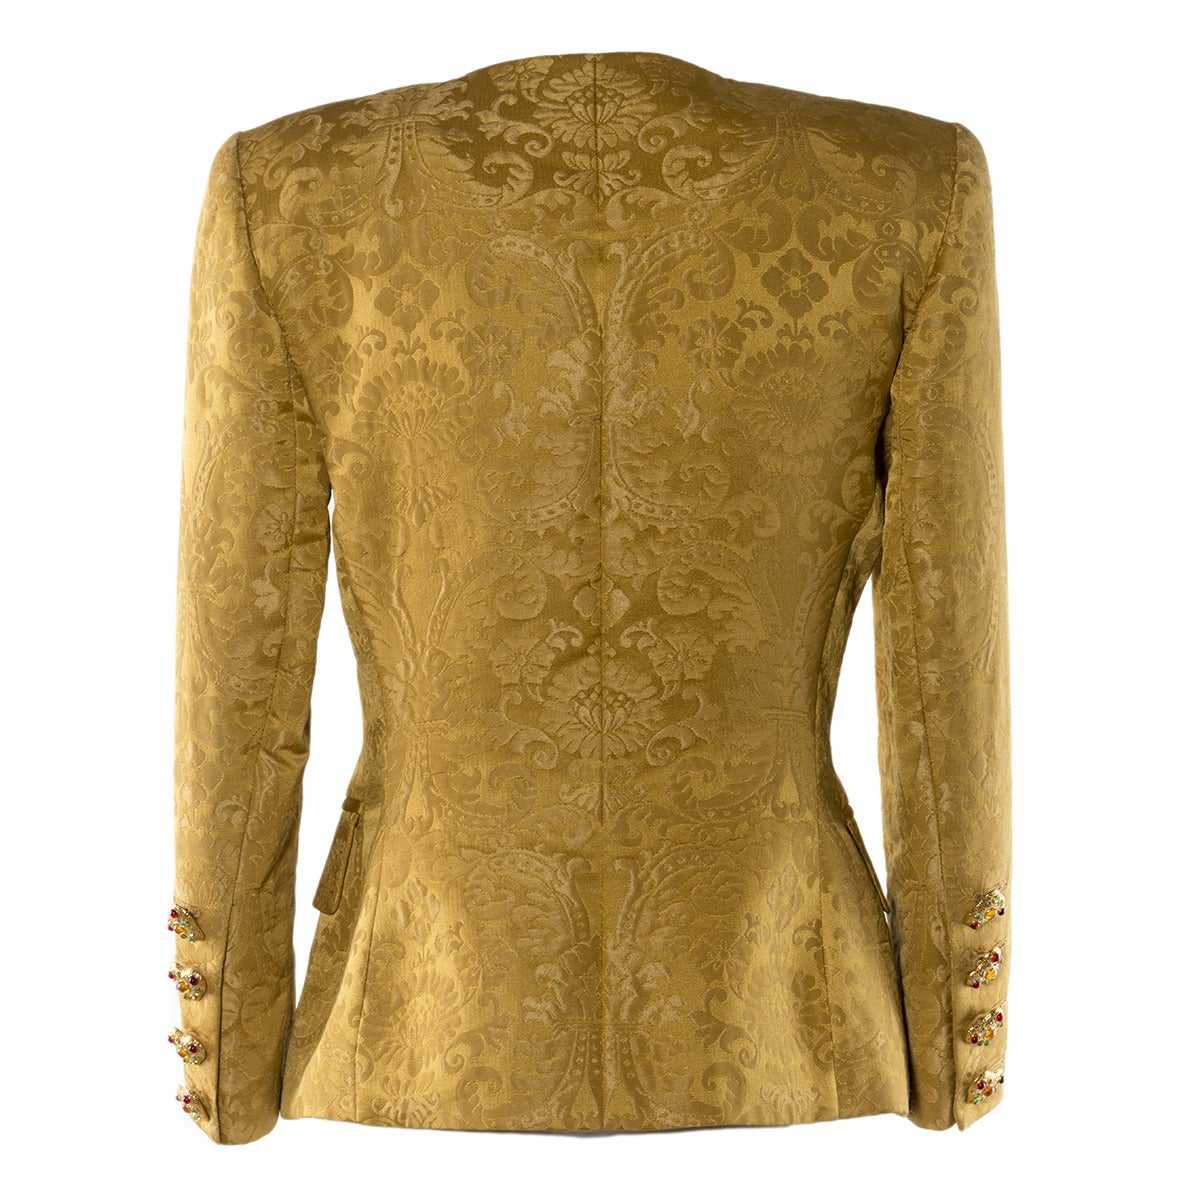 Fantastic jacket by Rena Lange